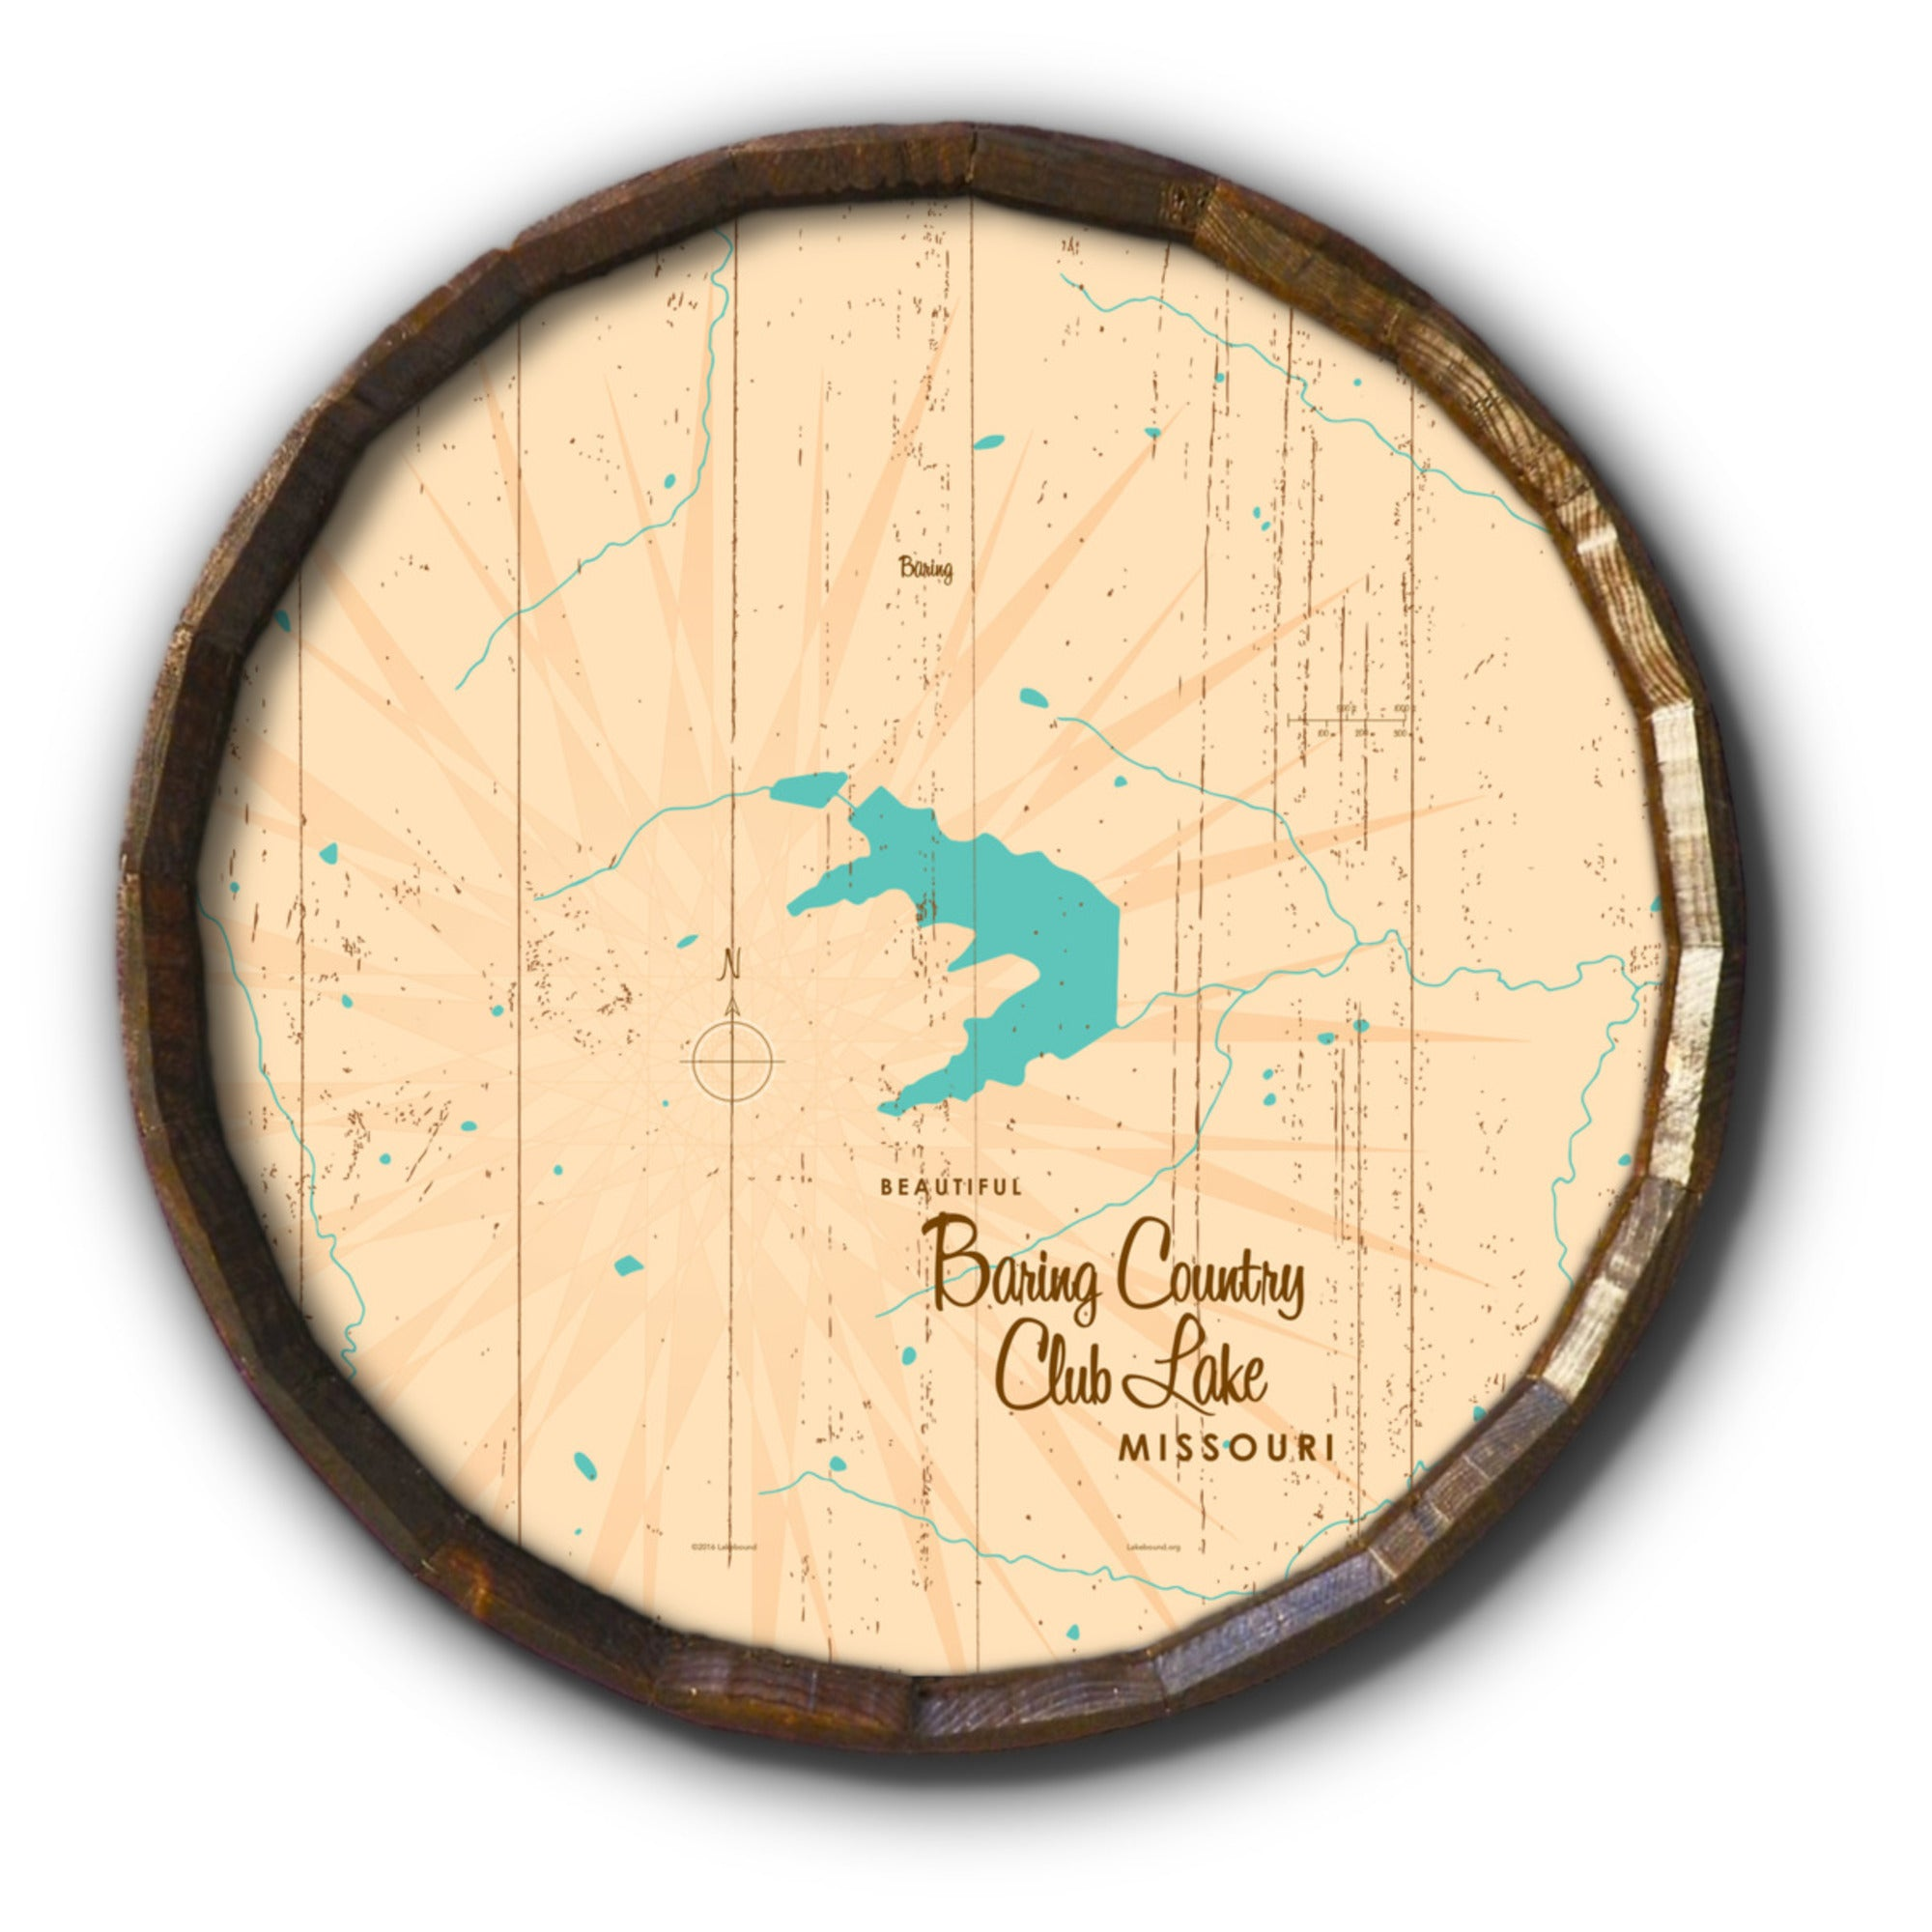 Baring Country Club Lake Missouri, Rustic Barrel End Map Art